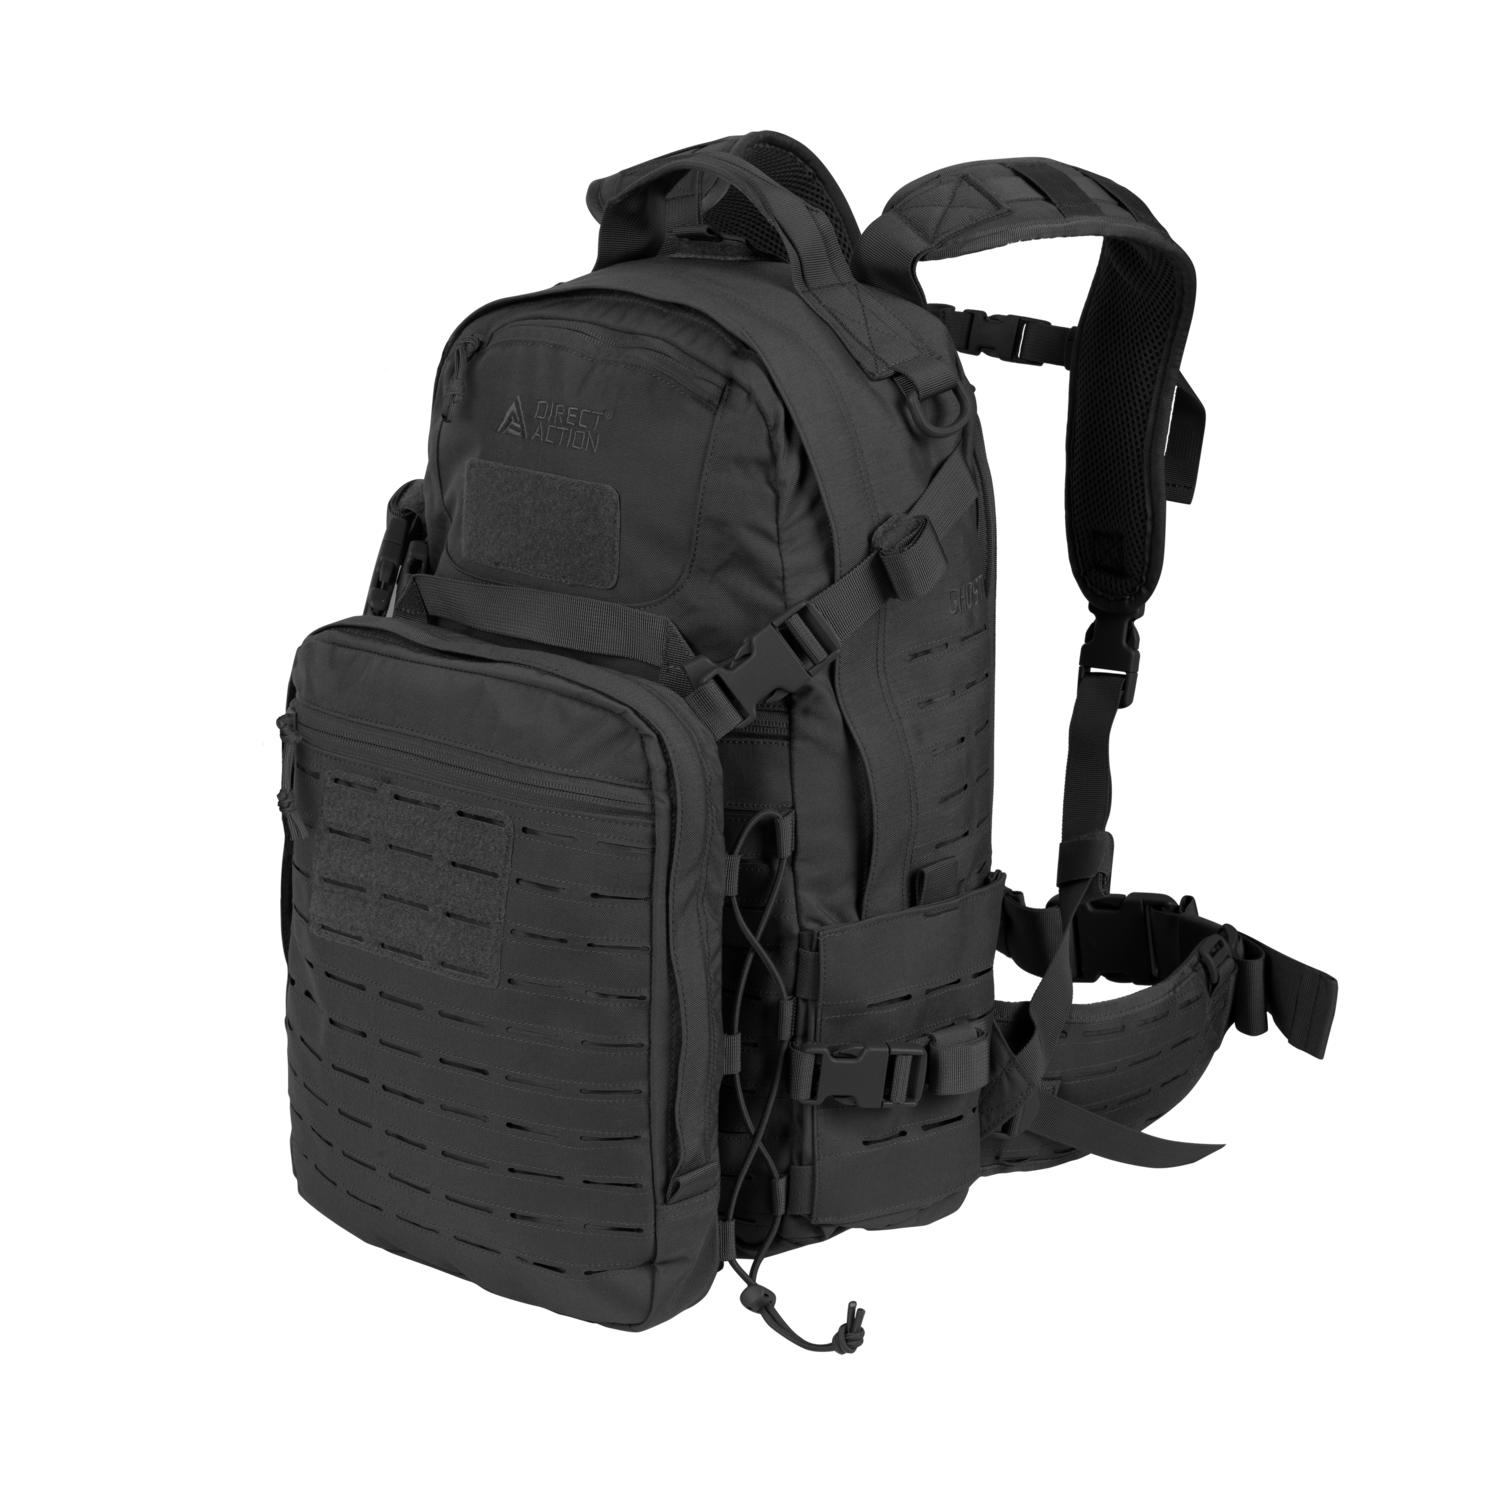 GHOST MK II backpack Direct Action® Advanced Tactical Gear